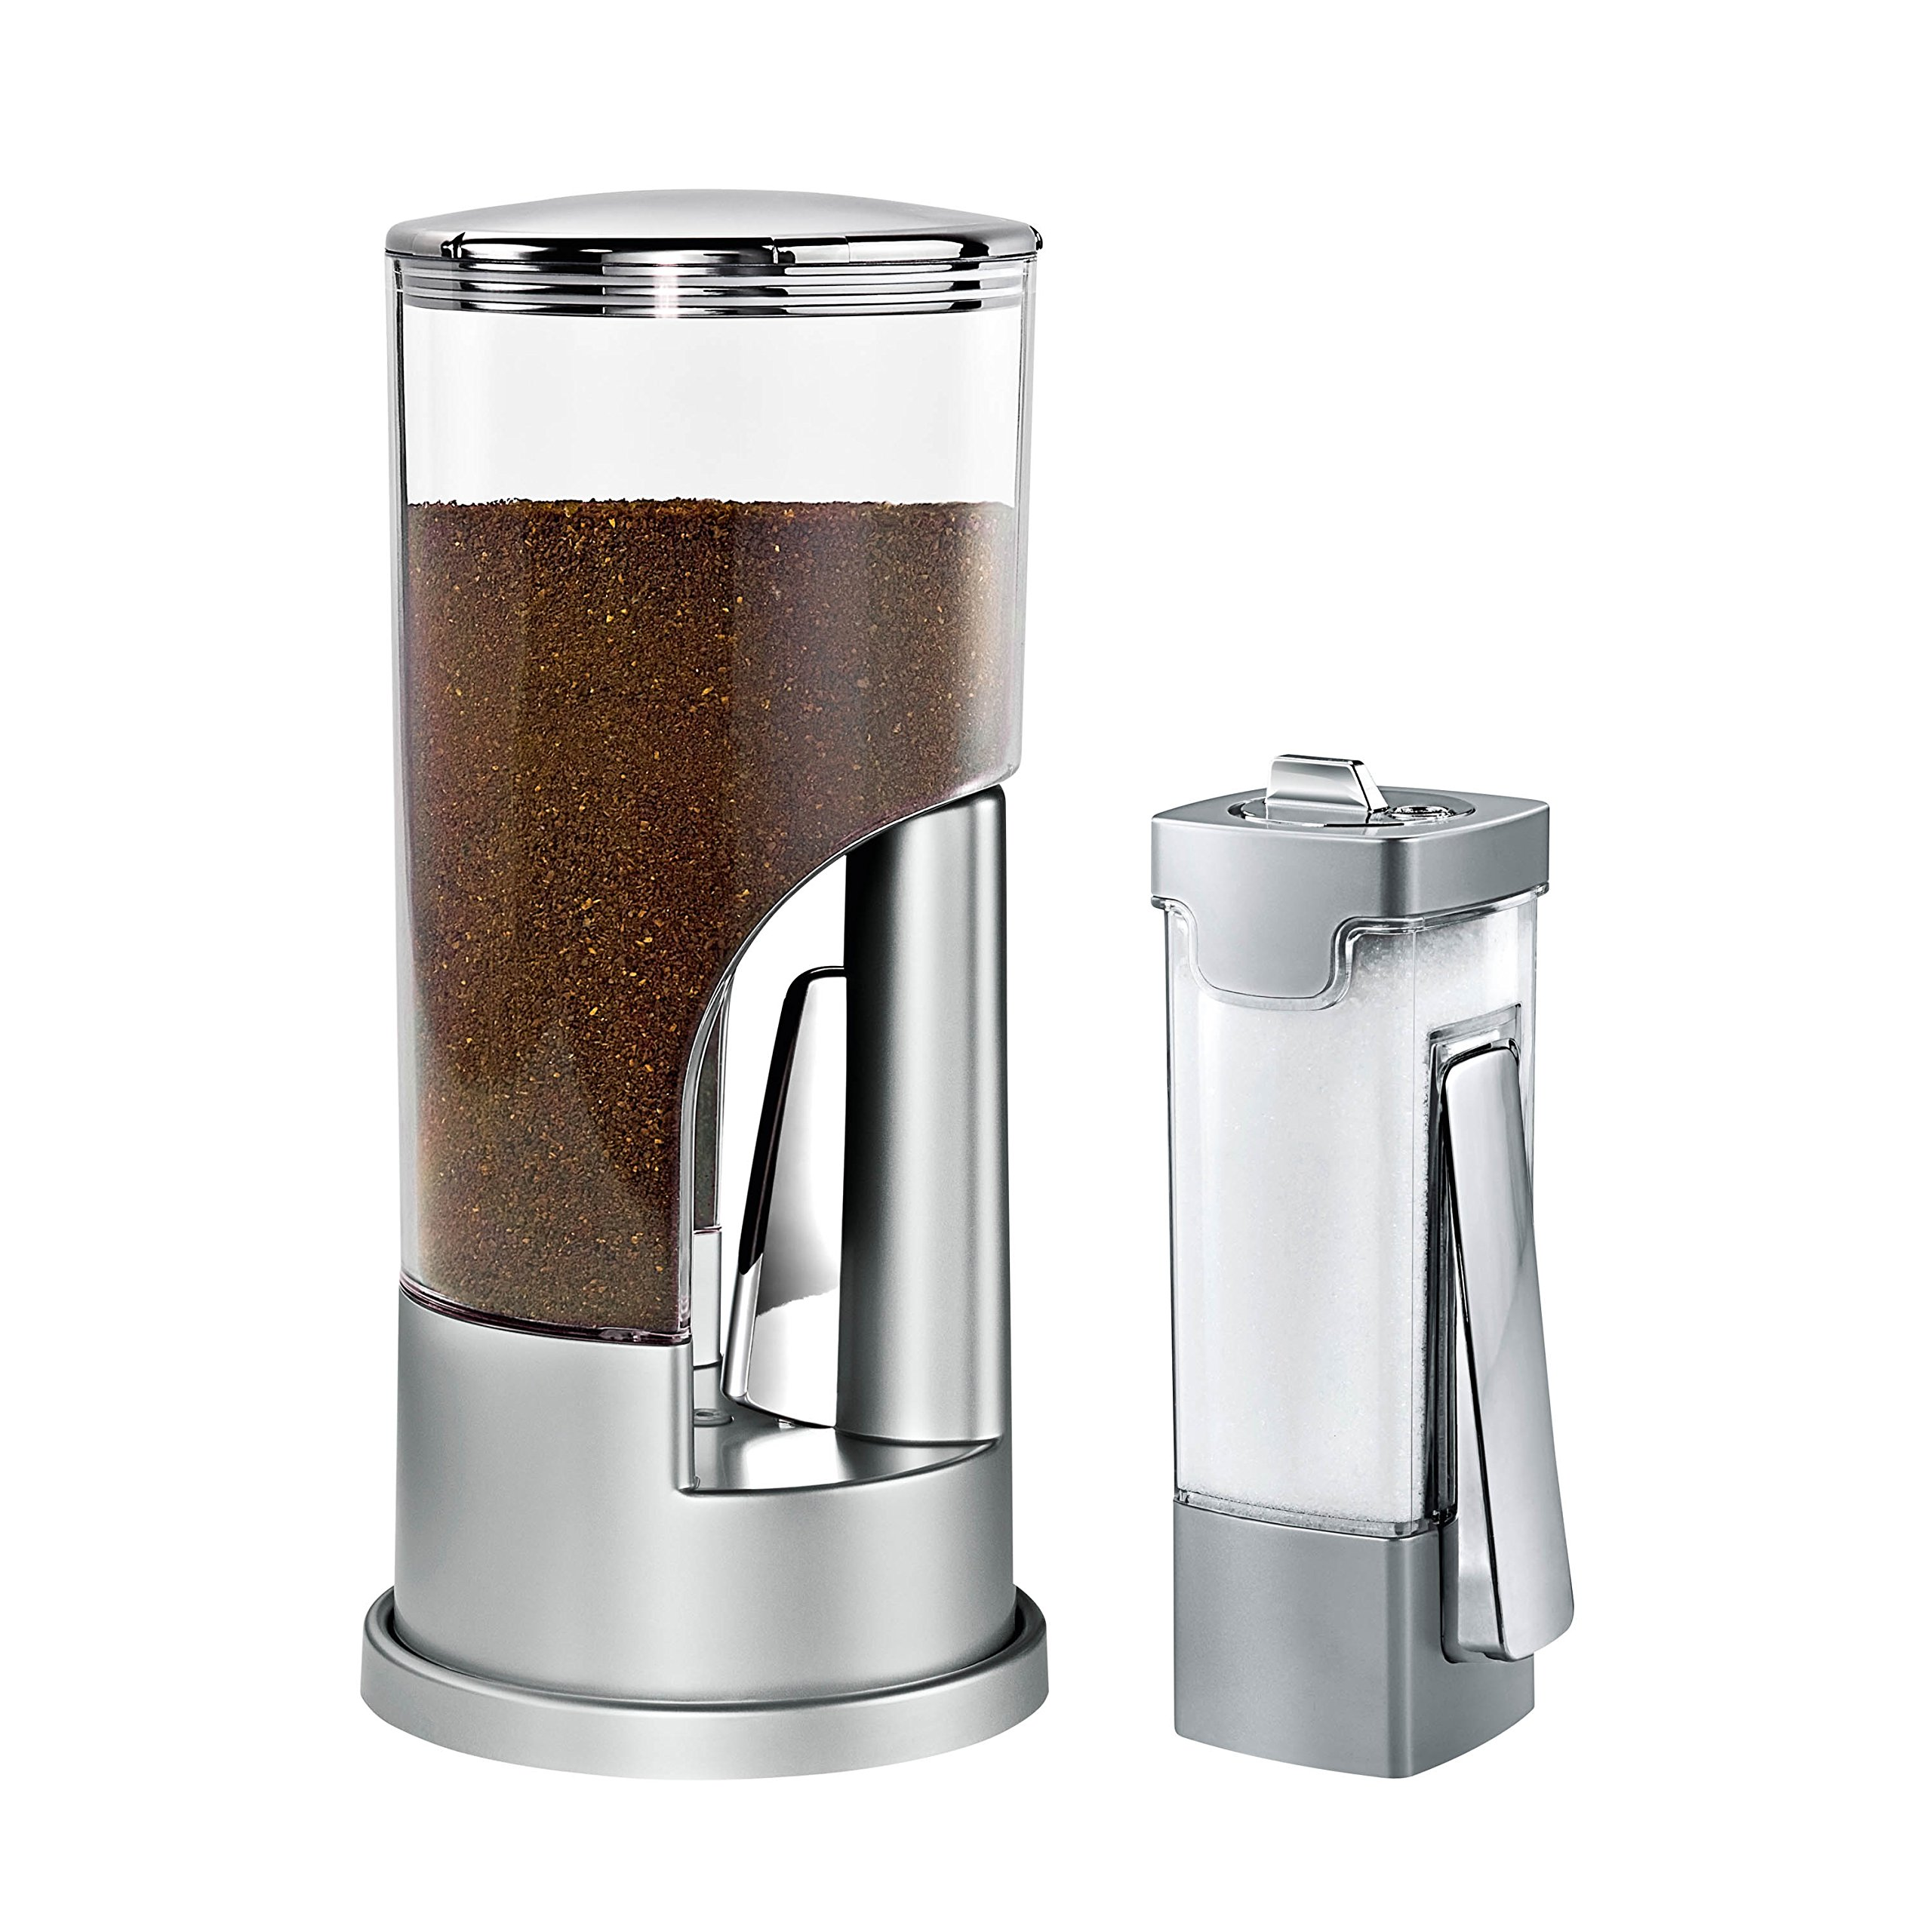 Honey-Can-Do KCHX06082 Coffee Dispenser & Sugar Dispenser Set by Honey-Can-Do